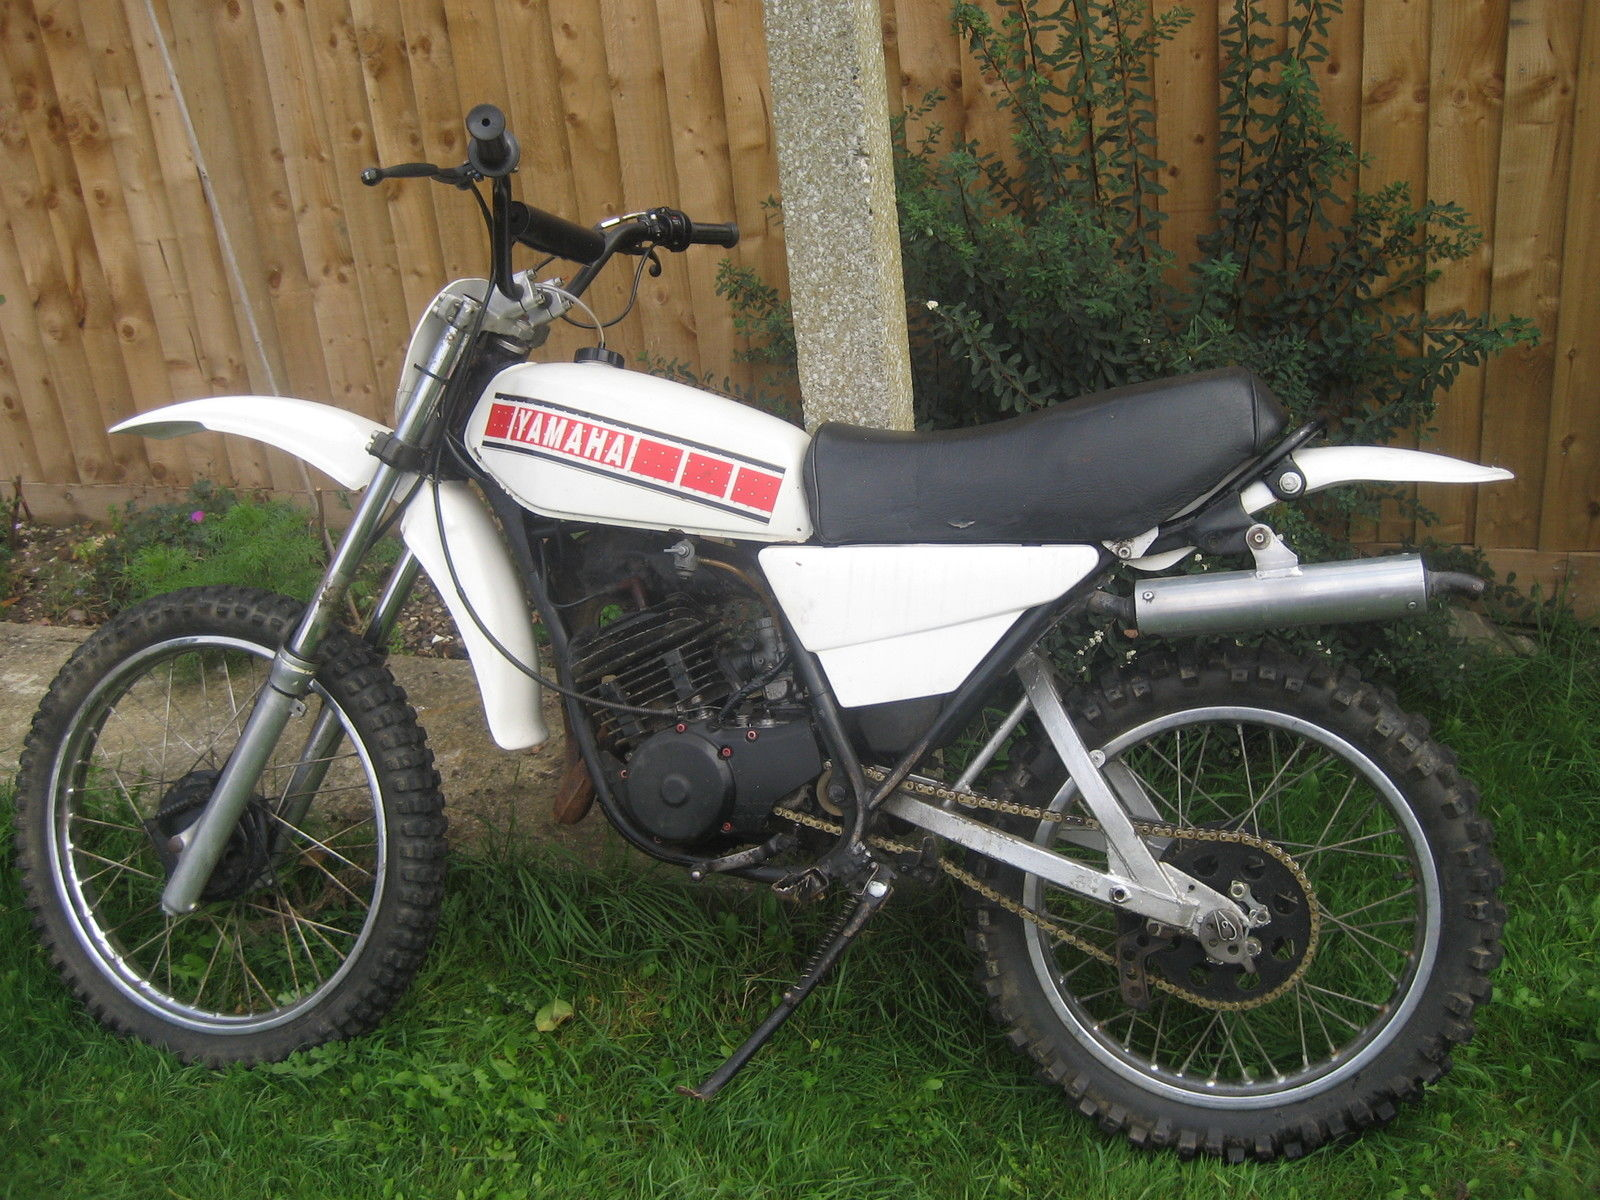 1979 yamaha dt 175 pictures to pin on pinterest